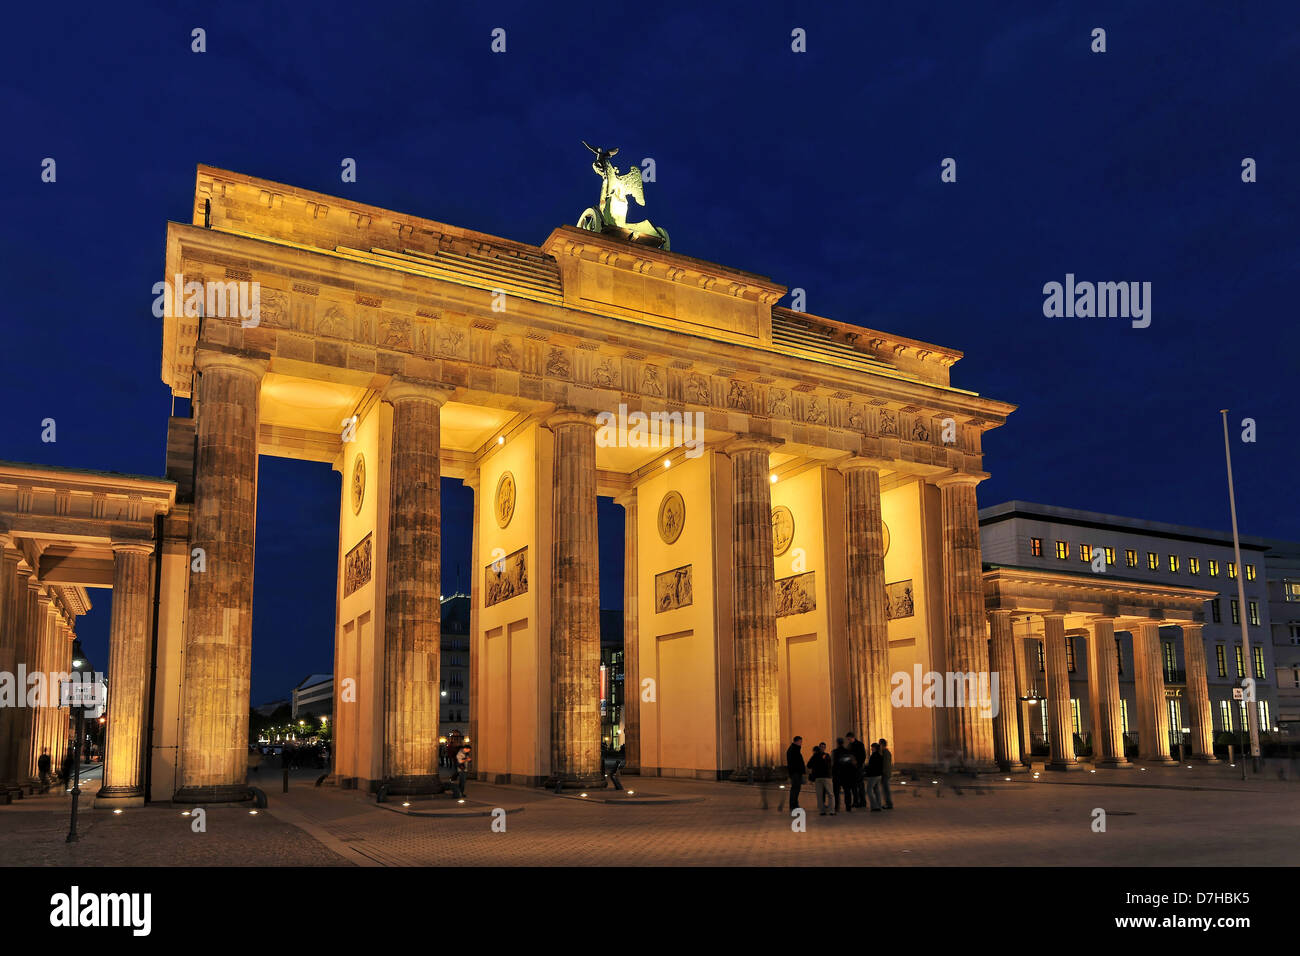 La porte de Brandebourg à Berlin dans la nuit Photo Stock